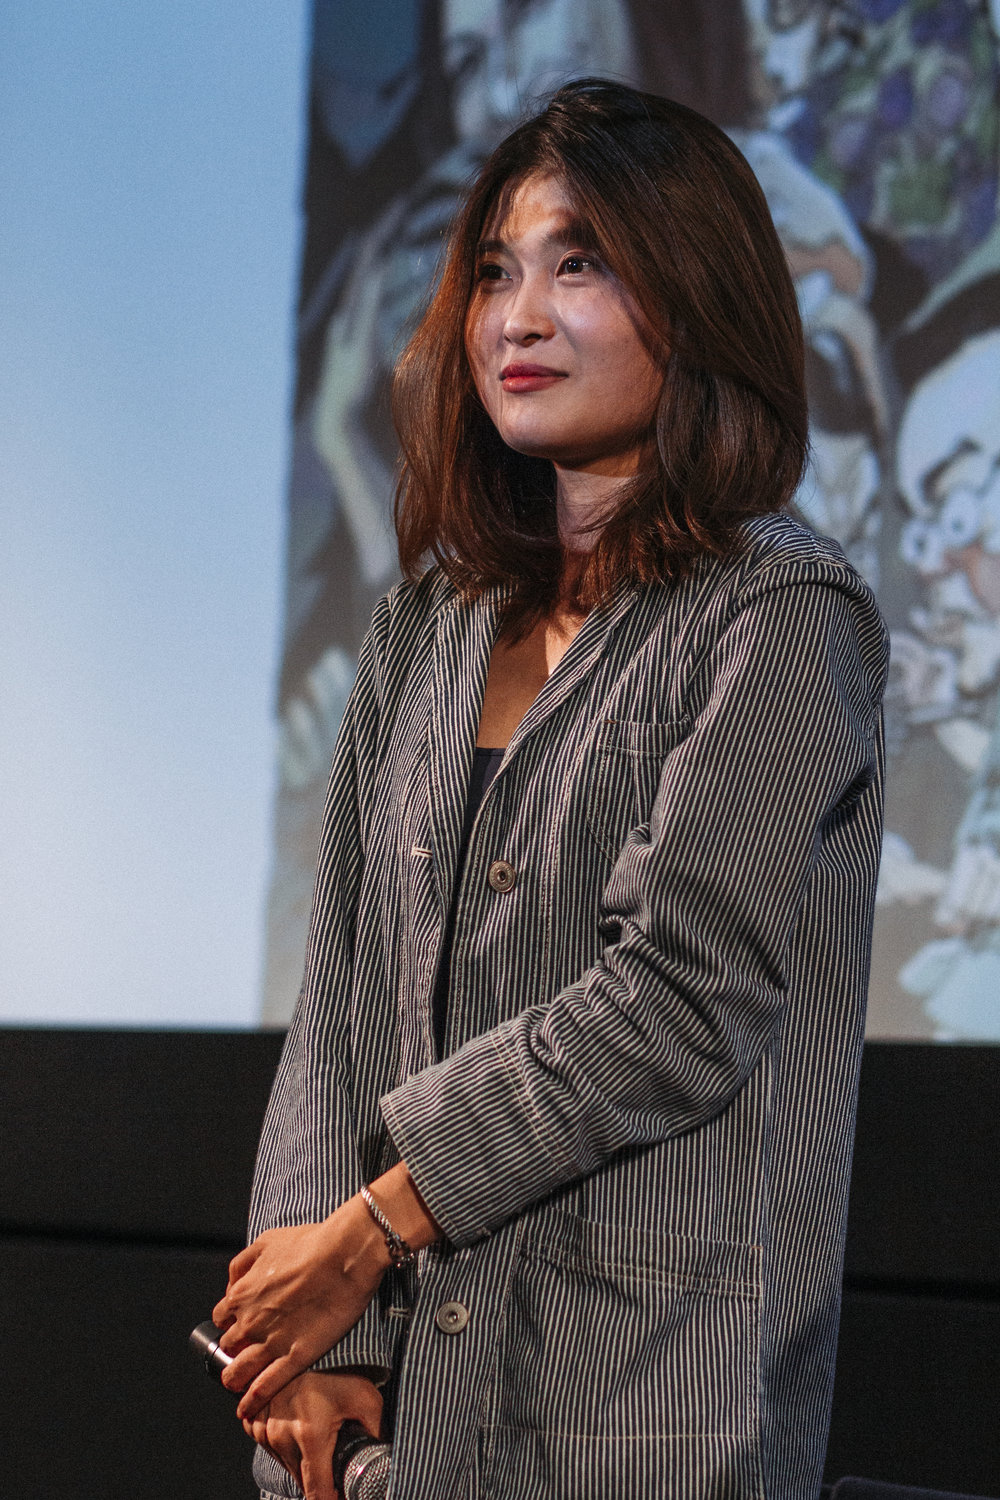 Heiward Mak, Reel Asian Film Festival, 2017